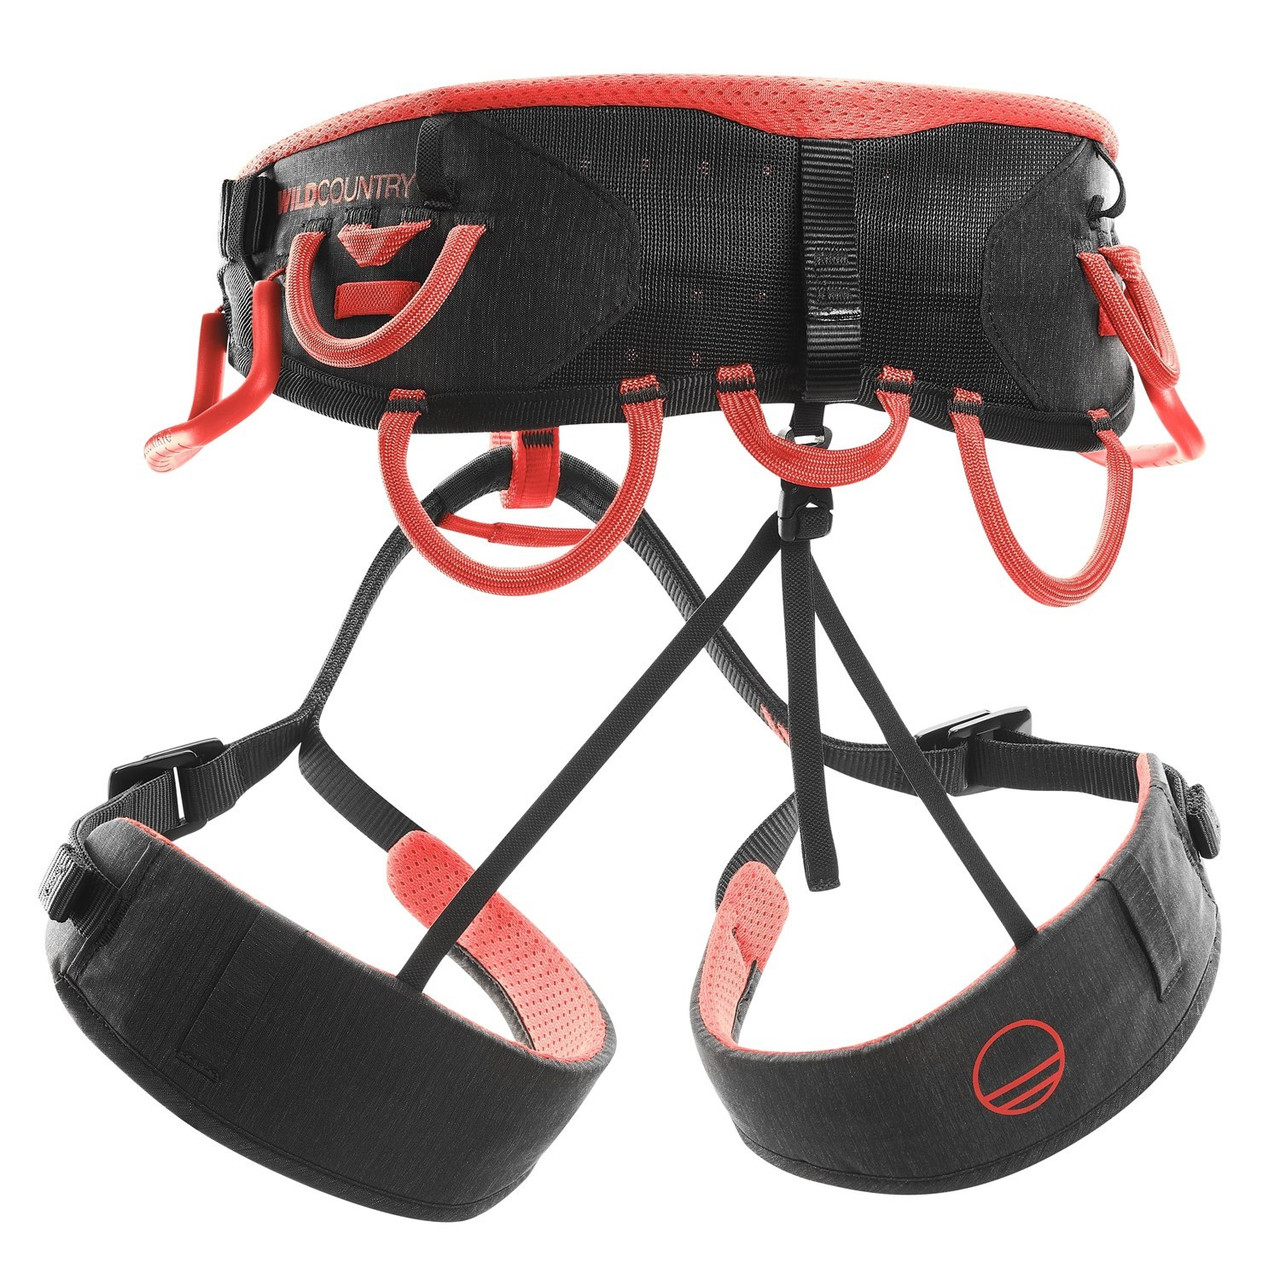 Wild Country Syncro Harness Online @mountainmailorder - Back